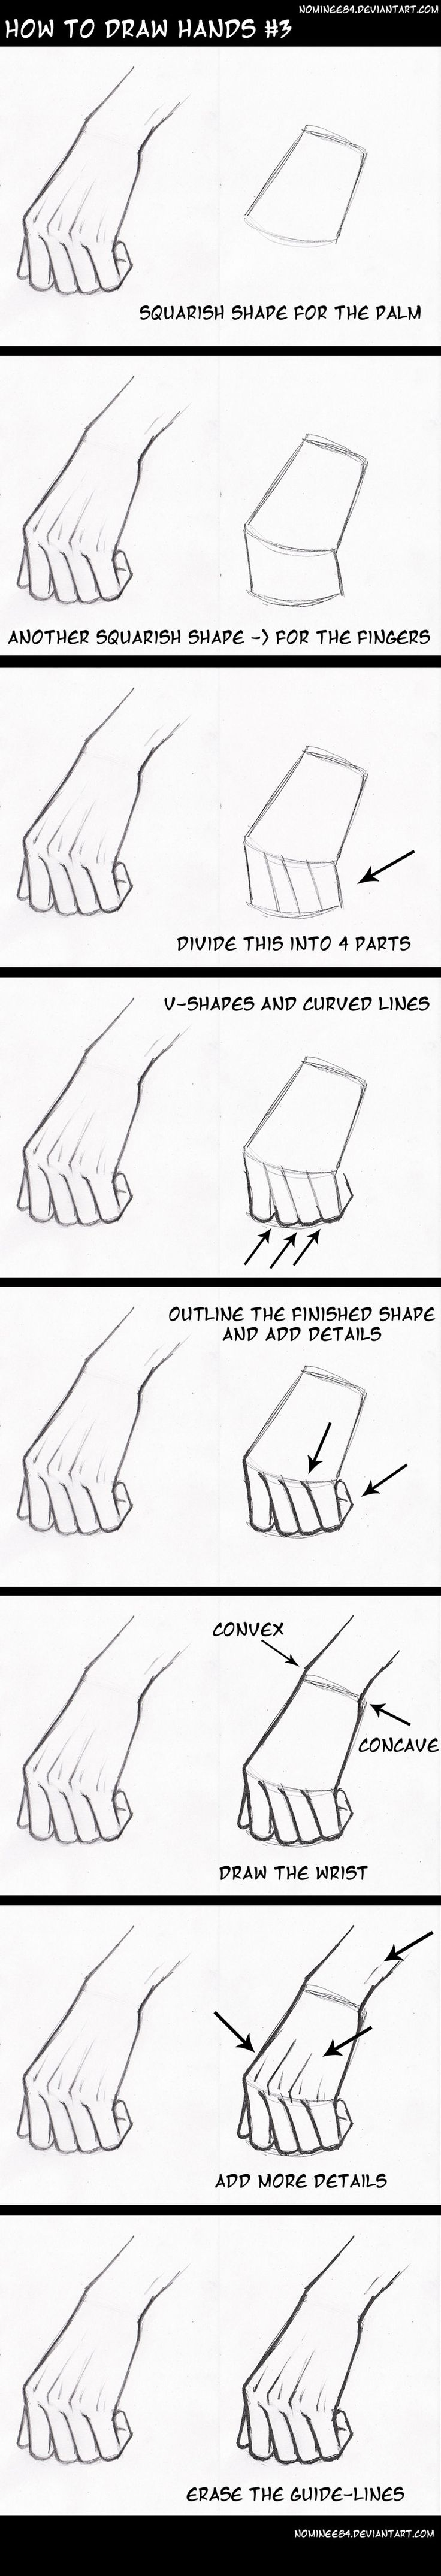 Best 25+ How To Draw Hands Ideas On Pinterest  Drawing Guide, Photoshop  Tutorials Tumblr And How To Draw Faces